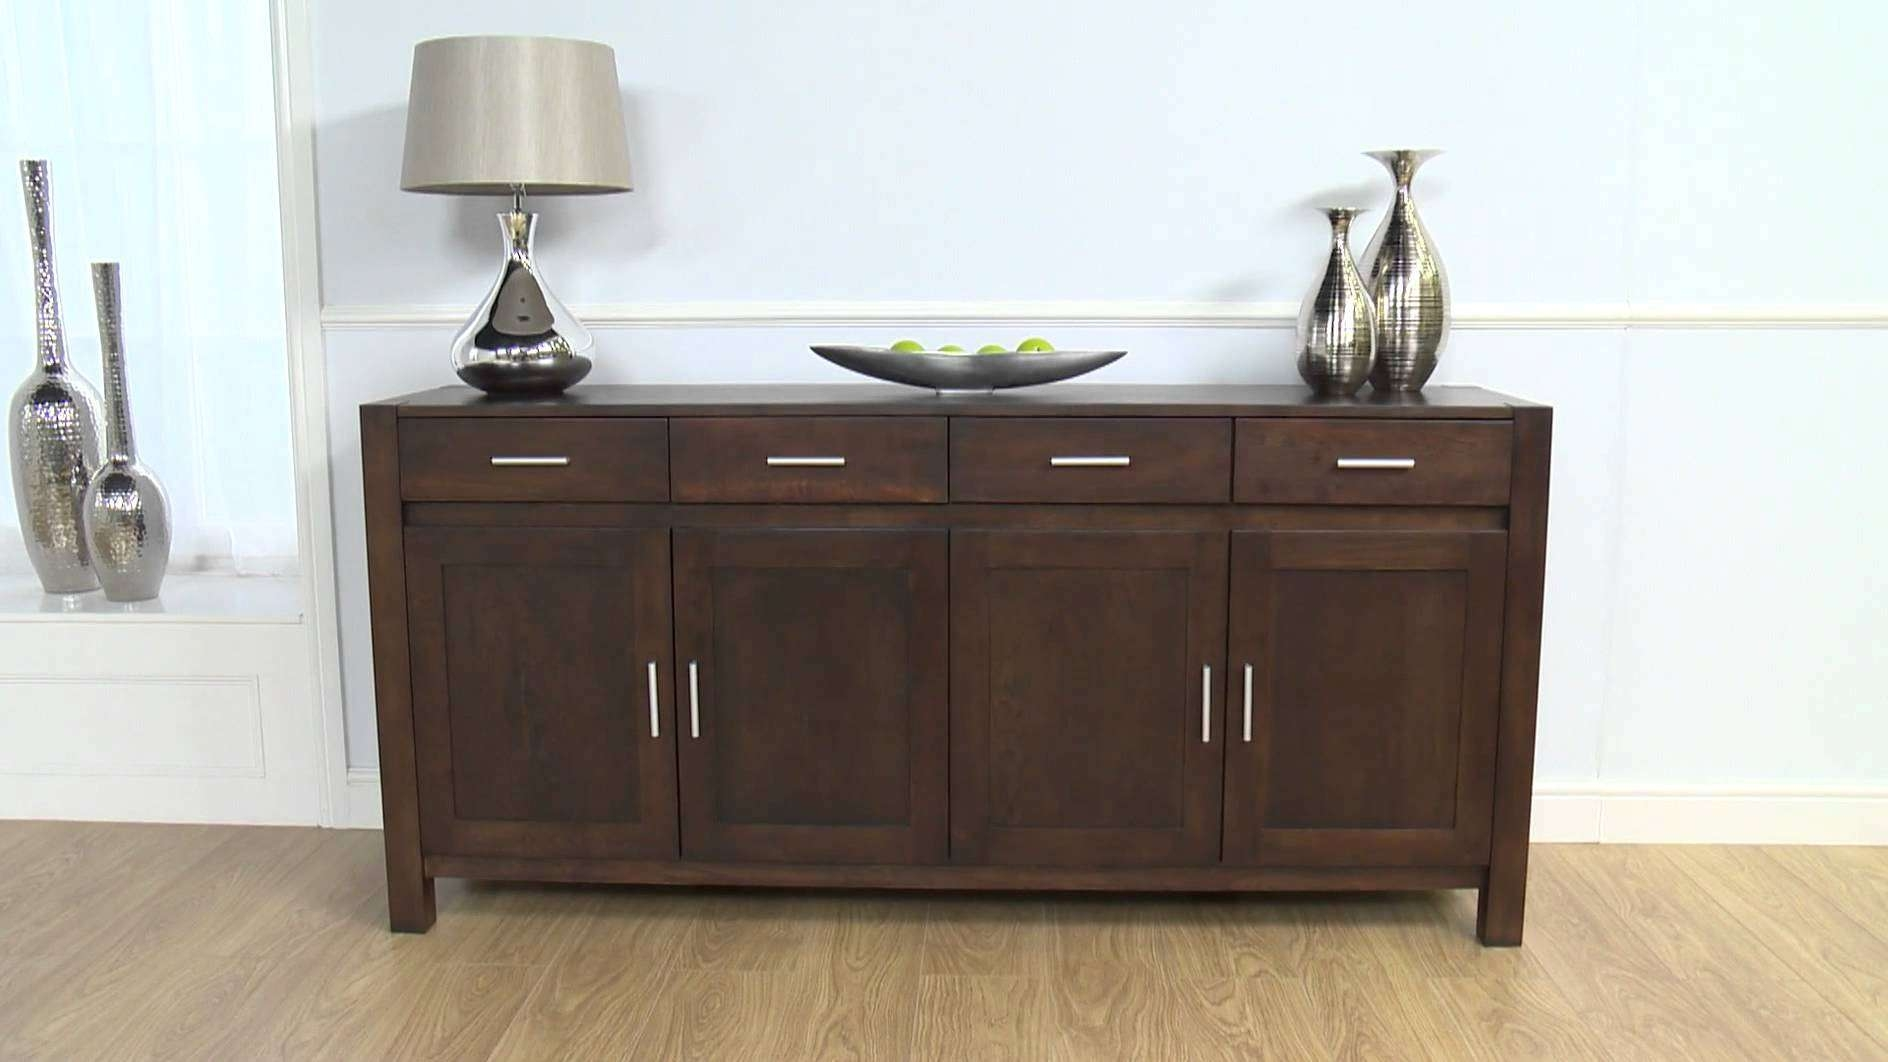 Dark Wood Sideboard: Verona Dark Oak Sideboard Xl – Youtube Regarding Dark Wood Sideboards (View 4 of 20)